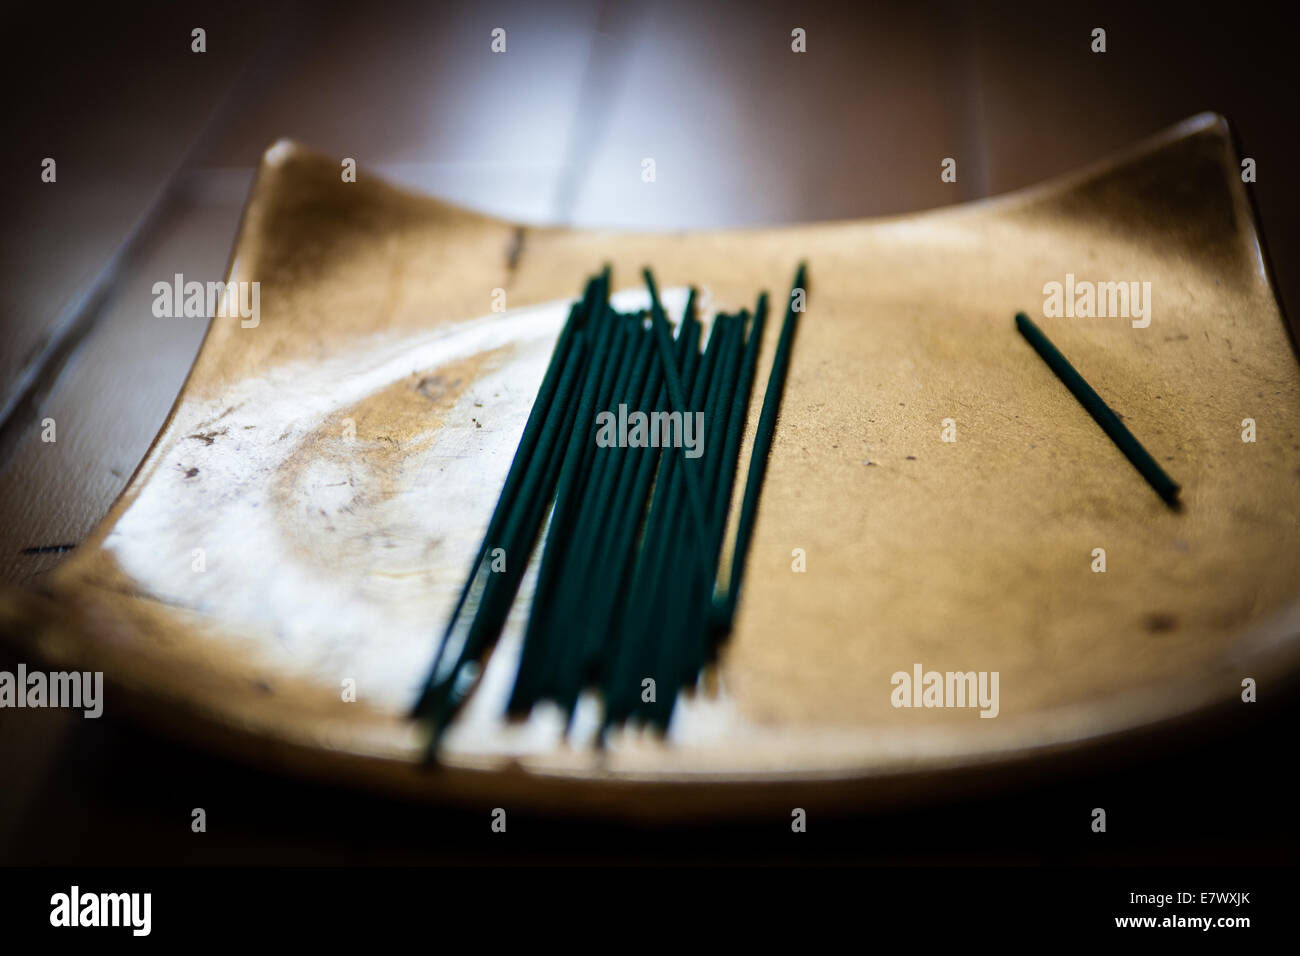 A Buddhist shrine with incense ready for meditation and puja - Stock Image